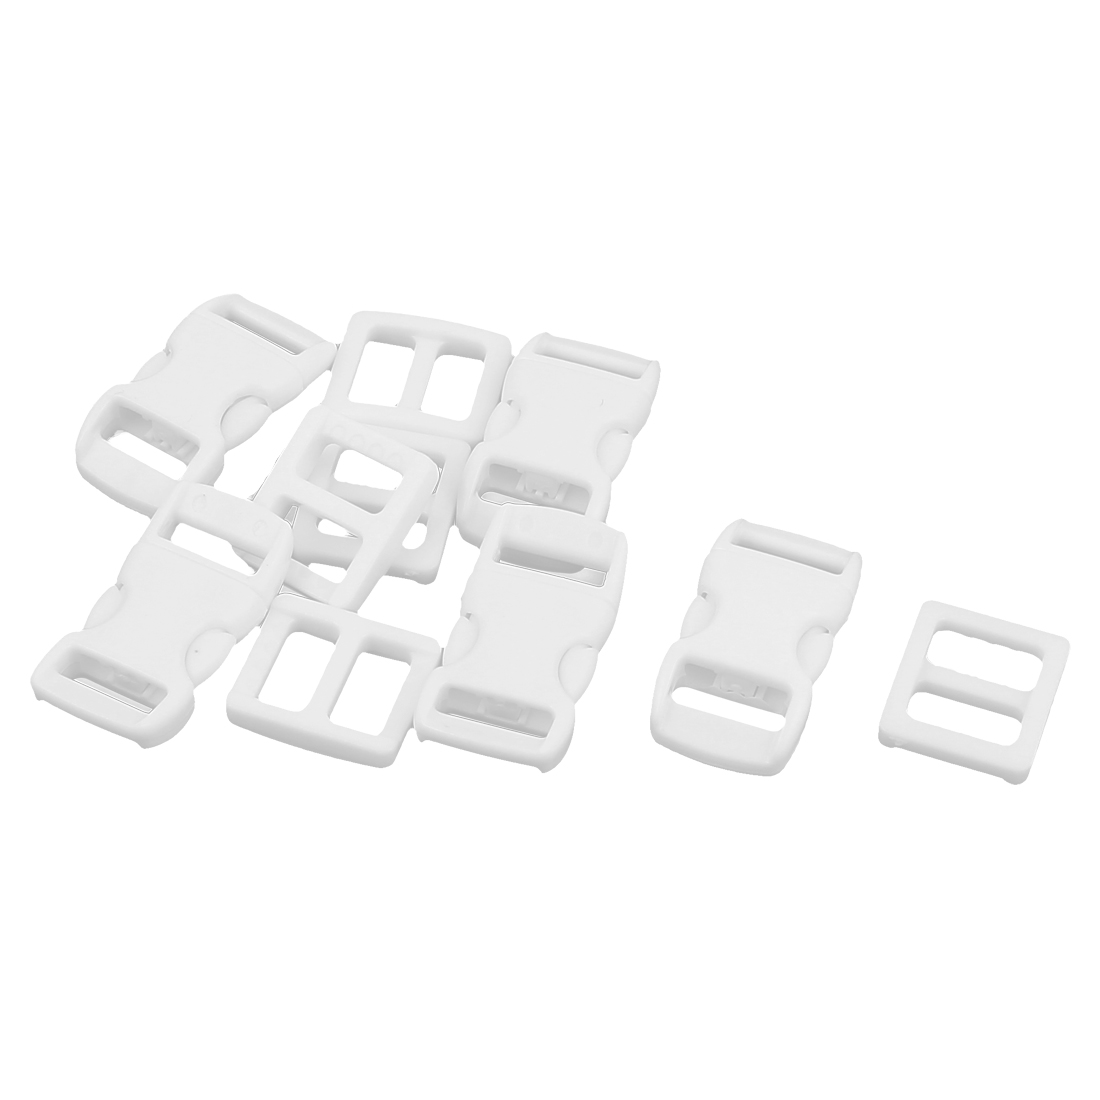 White Plastic Packbag Side Quick Release Clasp Buckles 10-11mm Webbing Strap Band 5pcs